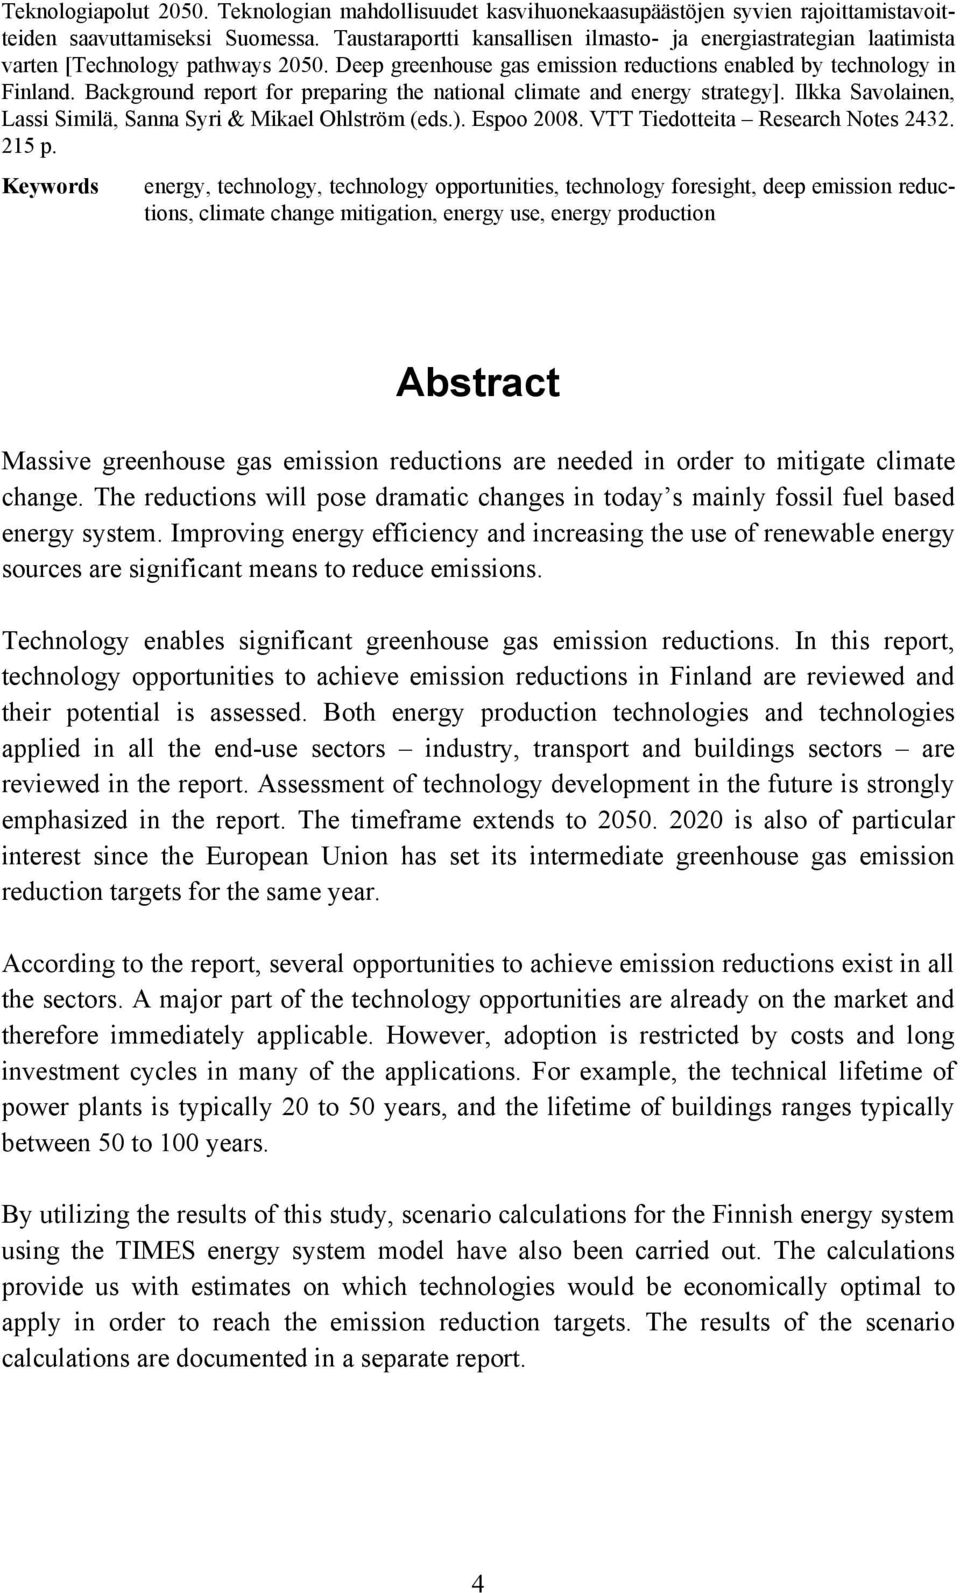 Background report for preparing the national climate and energy strategy]. Ilkka Savolainen, Lassi Similä, Sanna Syri & Mikael Ohlström (eds.). Espoo 2008. VTT Tiedotteita Research Notes 2432. 215 p.